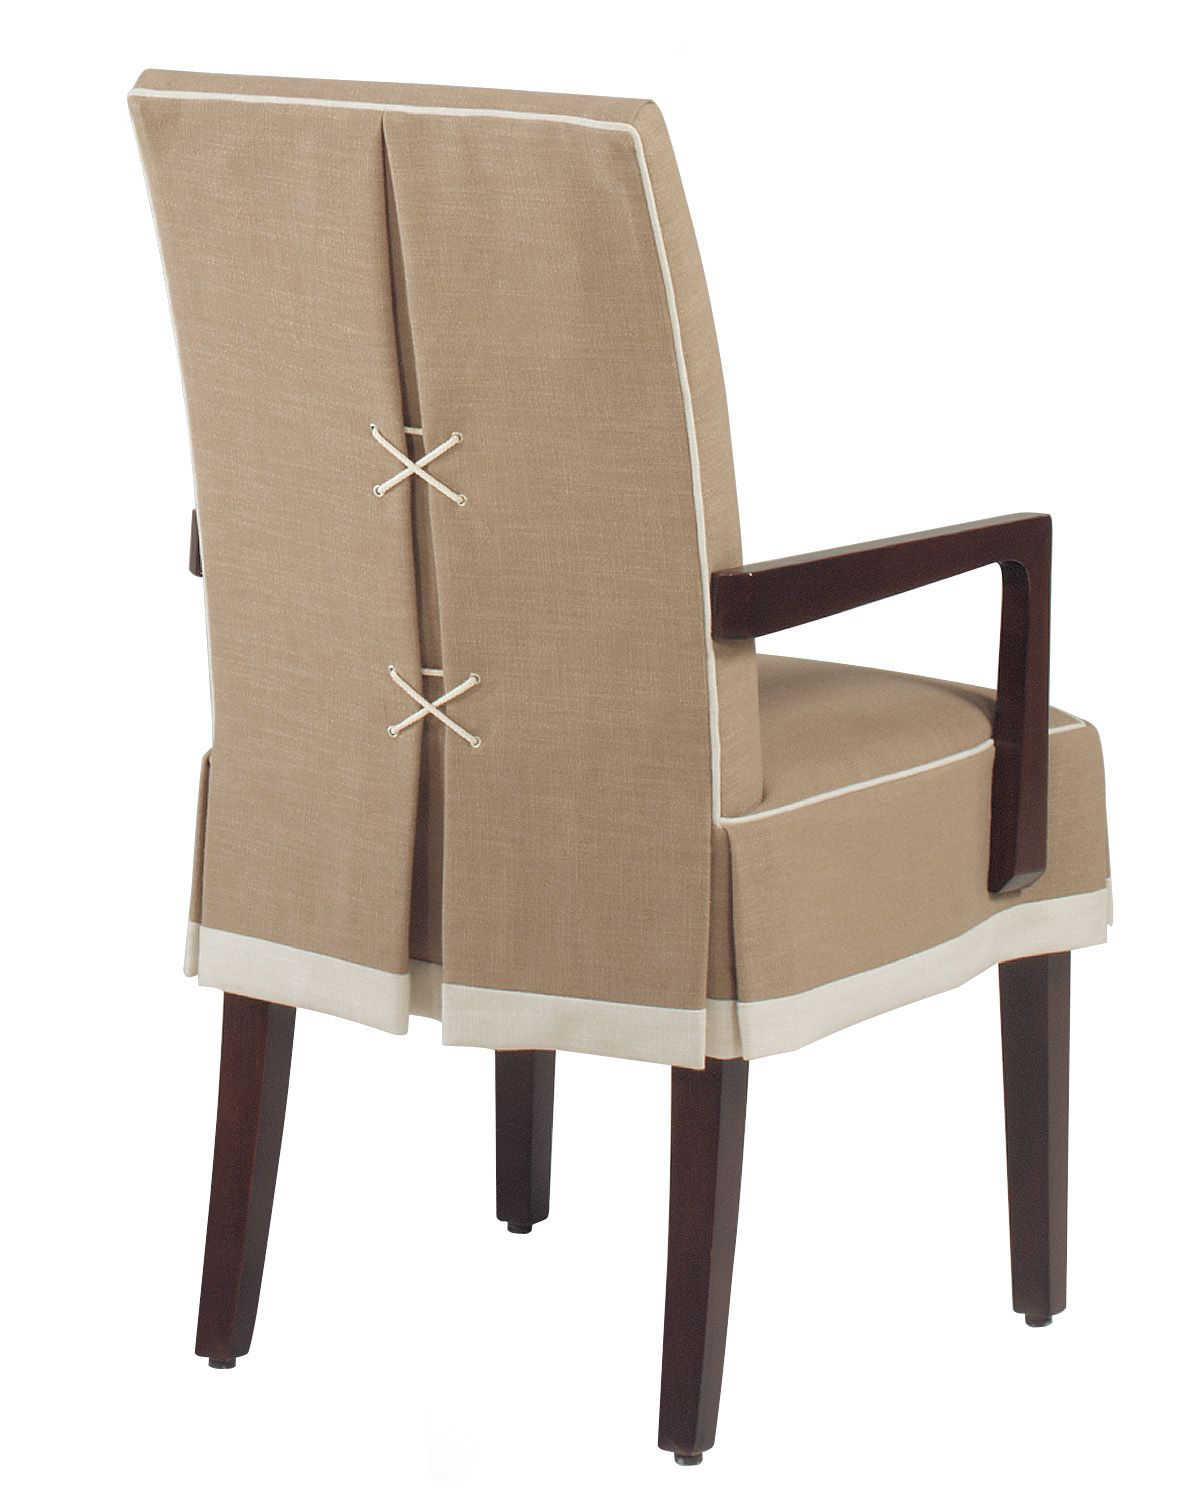 Dining Room Chairs With Arms Covers Dining Room Chair Slipcovers